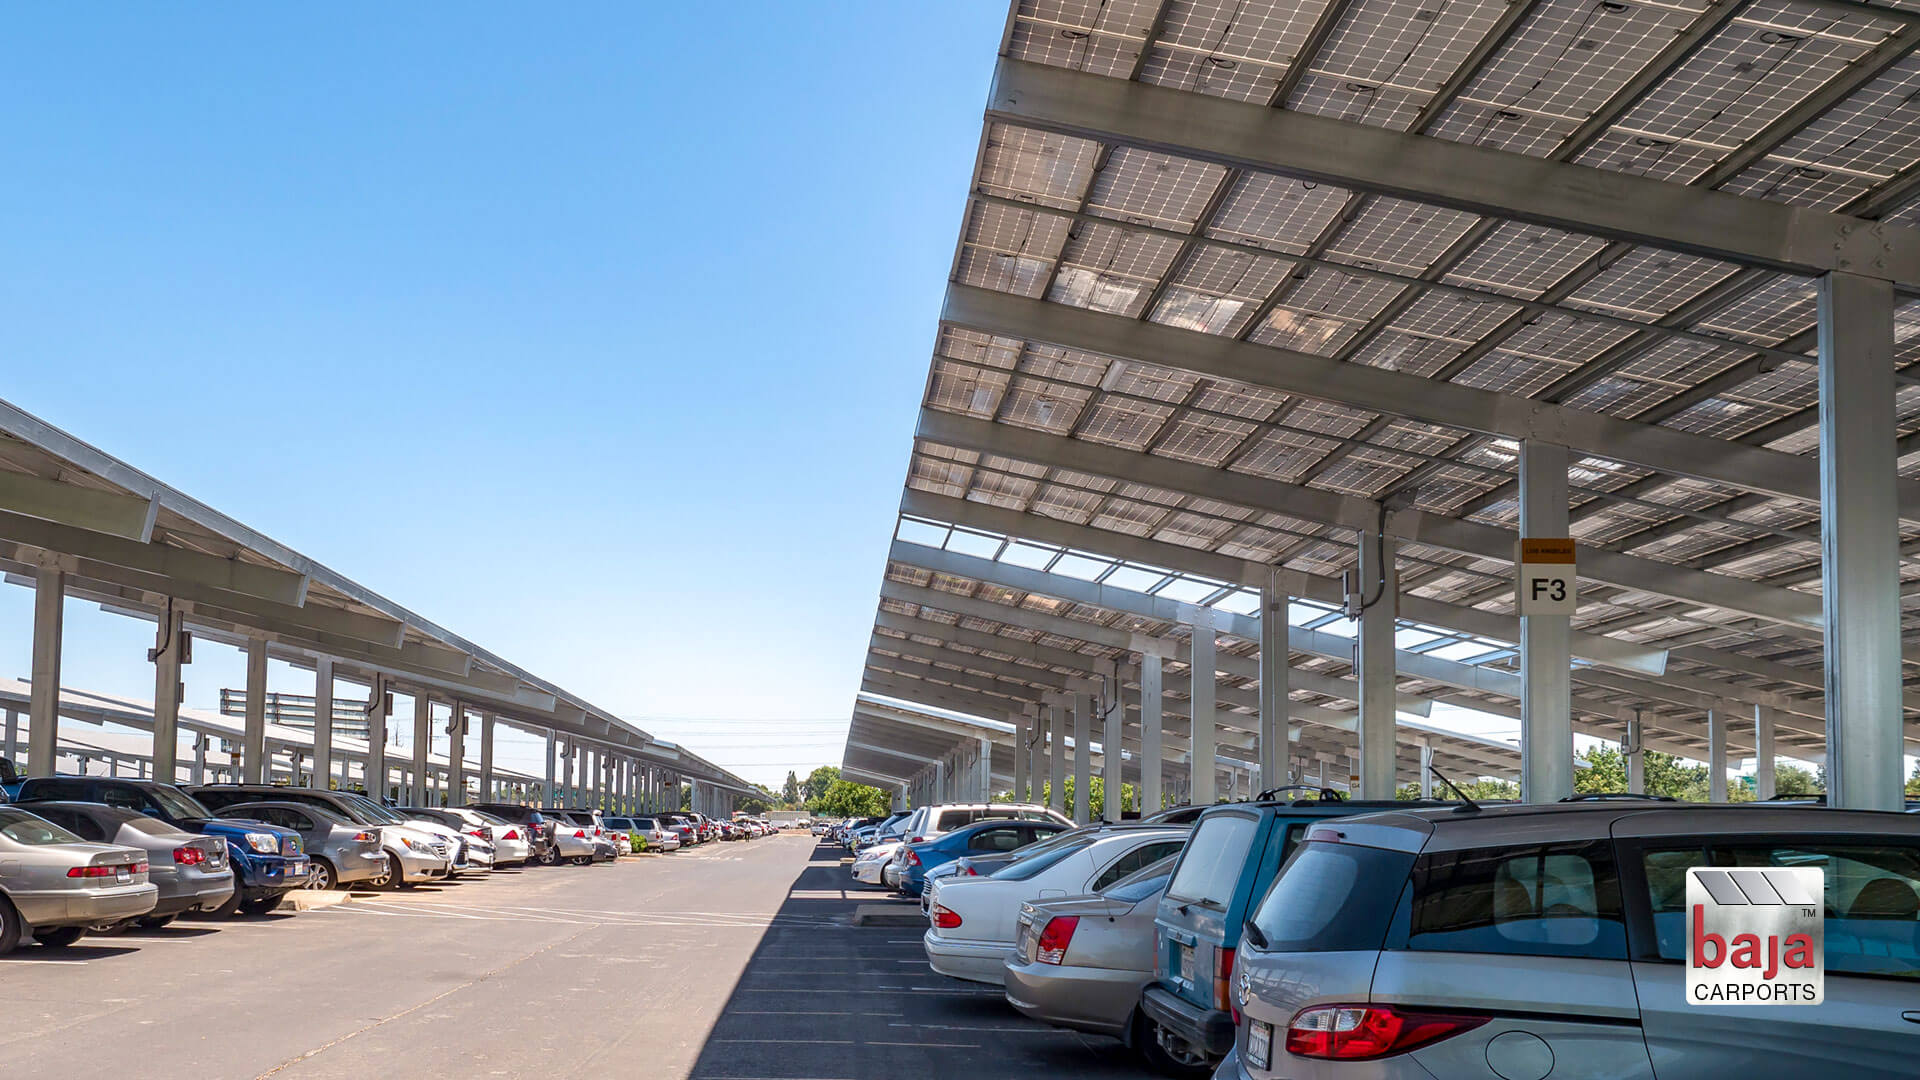 Baja Carports Solar Support Systems Amp Shade Canopies For